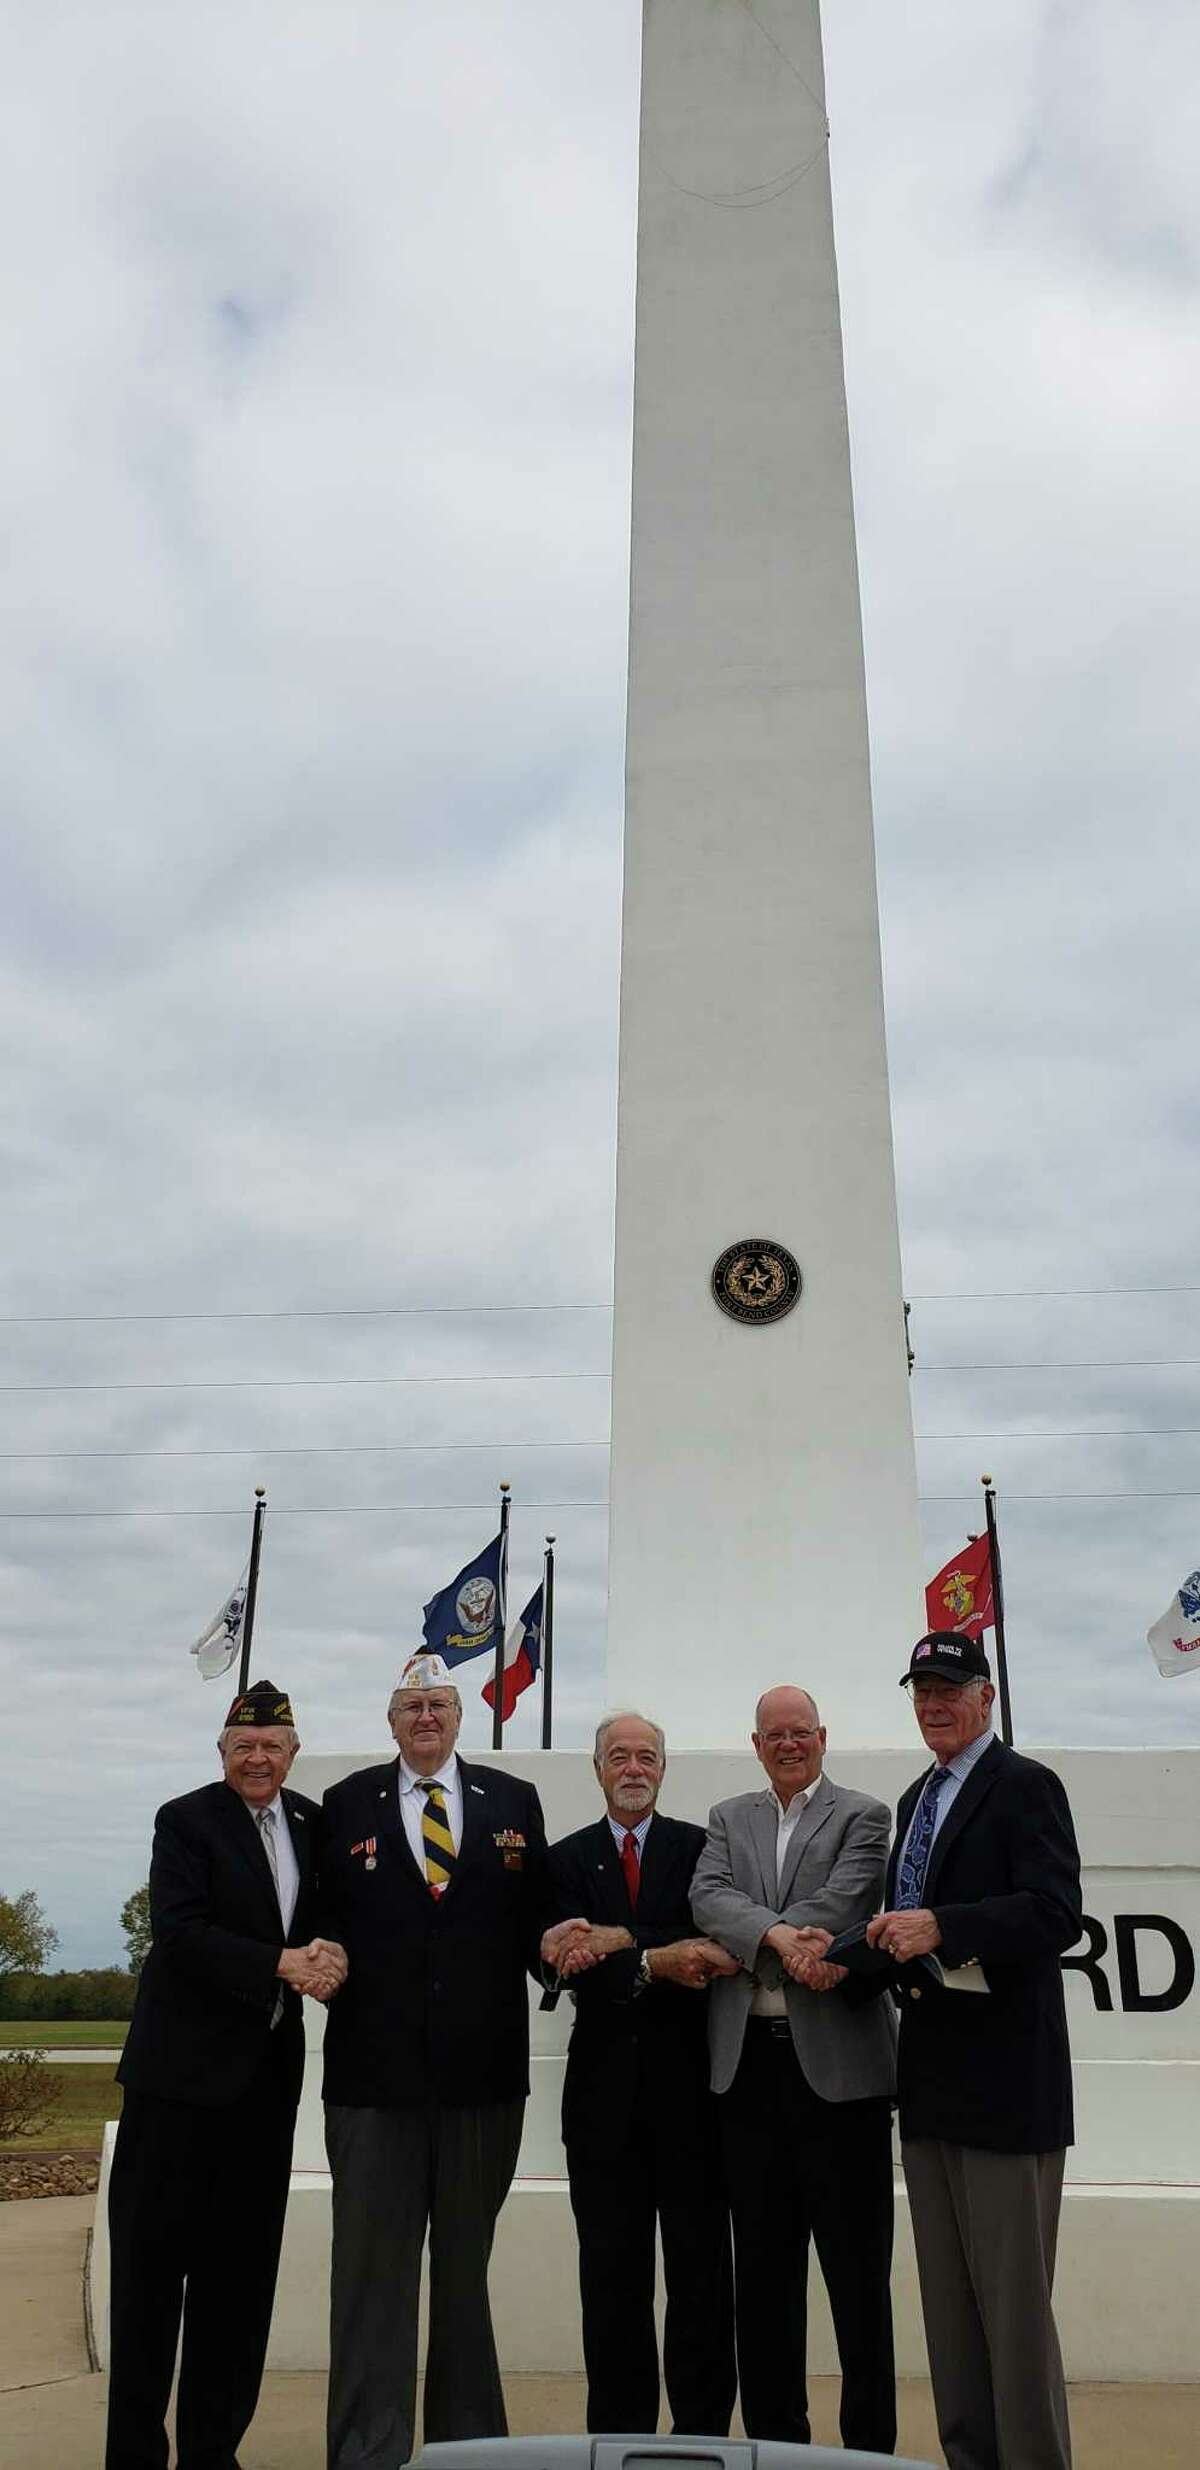 The Rotary Club of Katy and Katy Veterans of Foreign Wars Post 9182 observed Veterans Day on Nov. 11 at Armed Forces Memorial Tower in Fort Bend County Freedom Park. From left are: Ken Burton, Katy Rotarian; Don Byrne, VFW Post commander;  David Frishman, Katy Rotarian; Andy Meyers, Fort Bend County Precinct 3 commissioner; and Ron Hudson, colonel retired USACE.